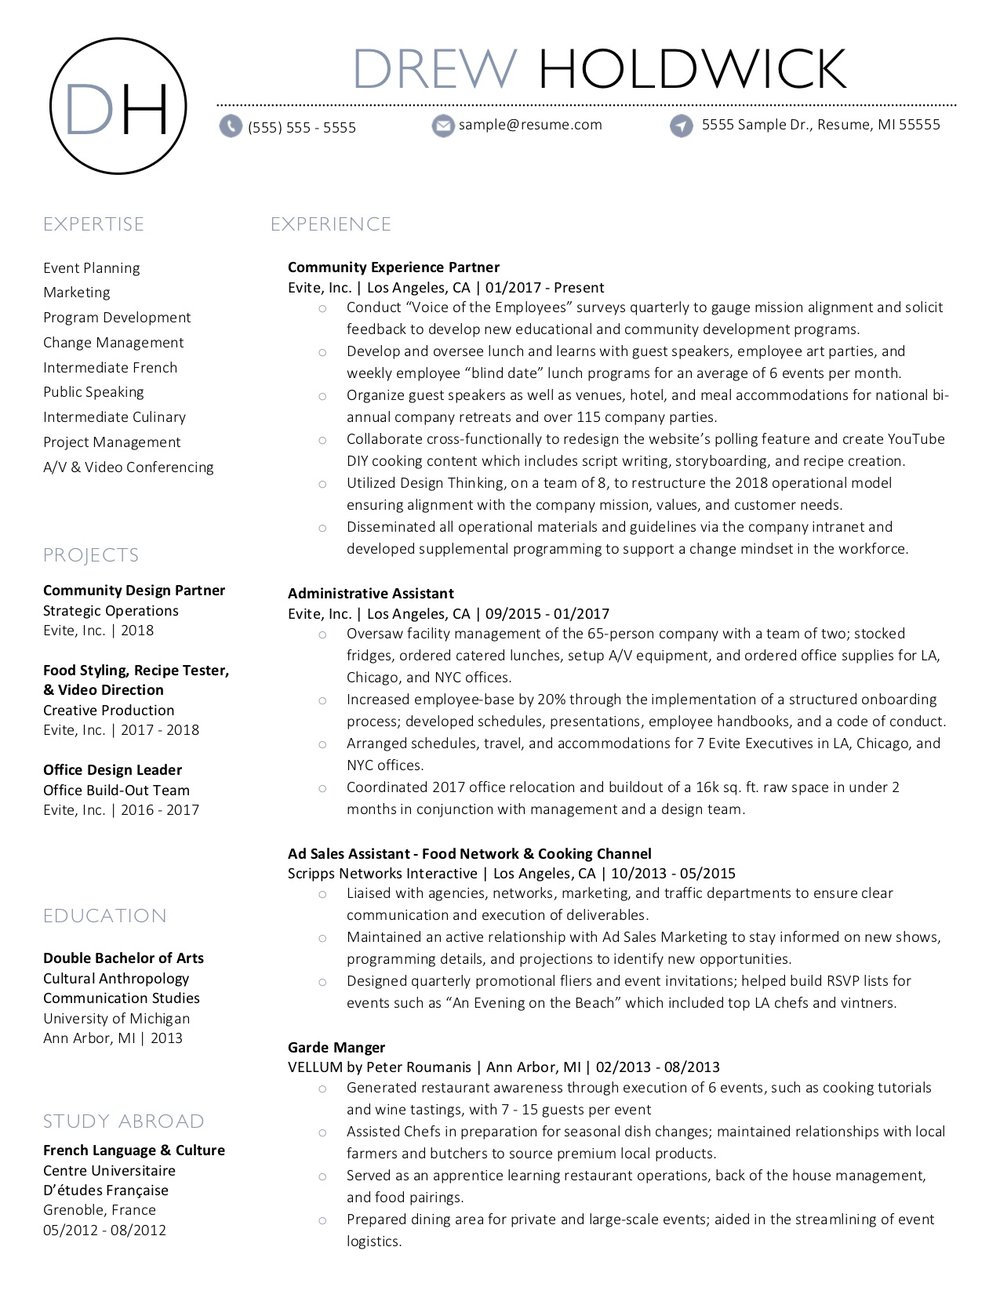 client resume 34 - 34 Small Business Consultant Resumes Experience